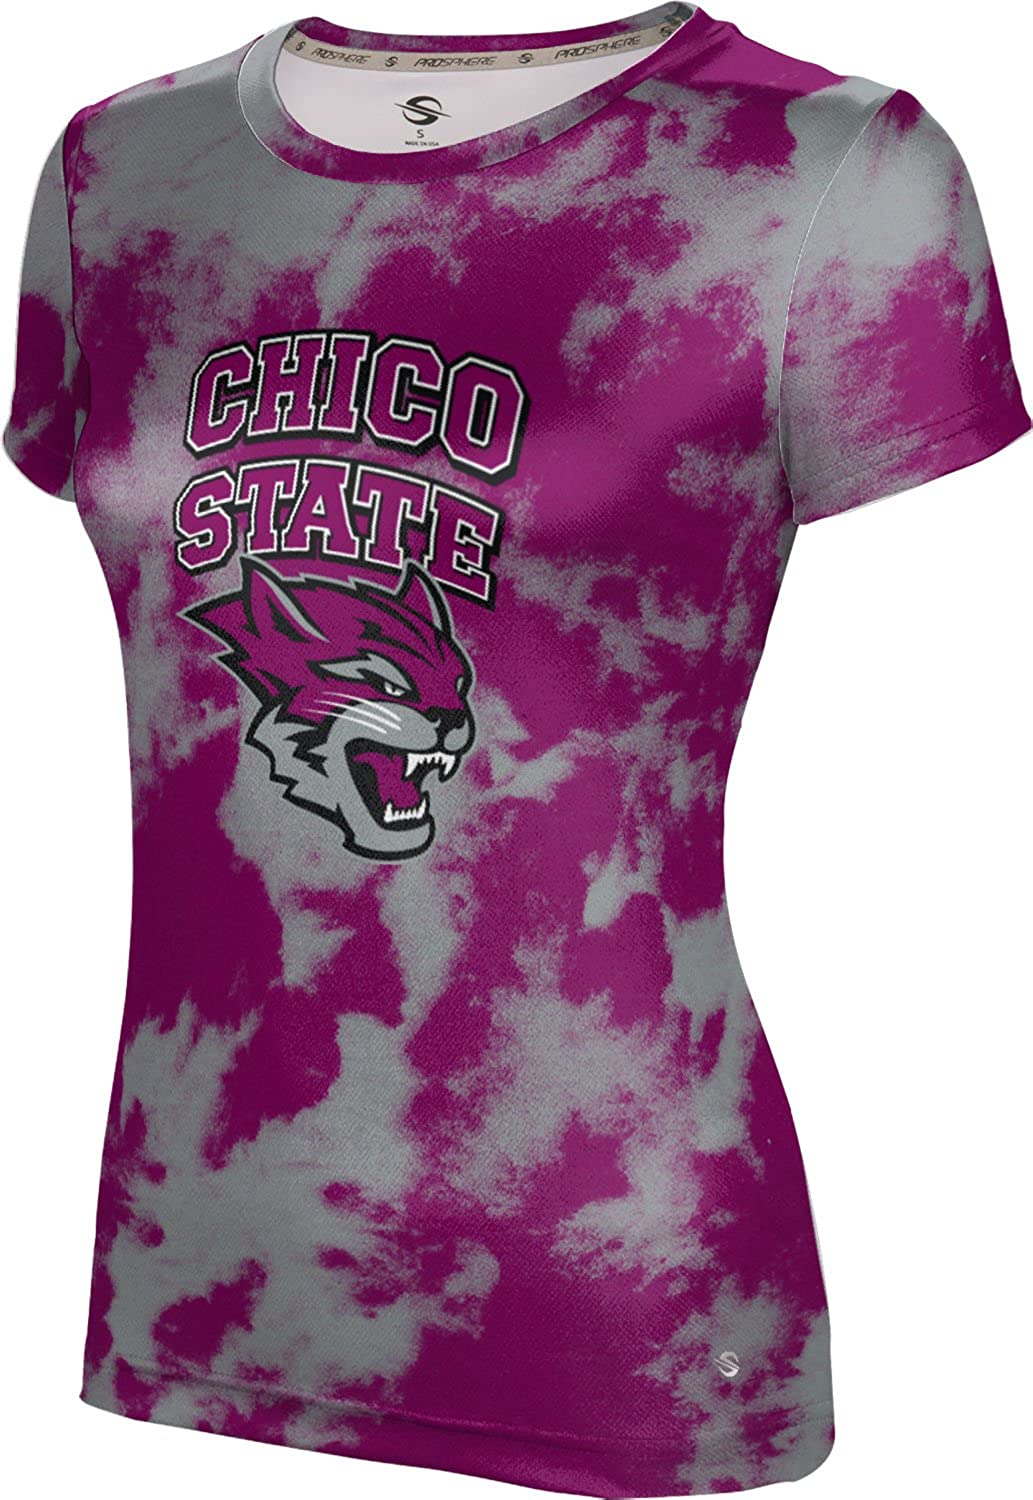 Grunge ProSphere California State University Chico Girls Performance T-Shirt